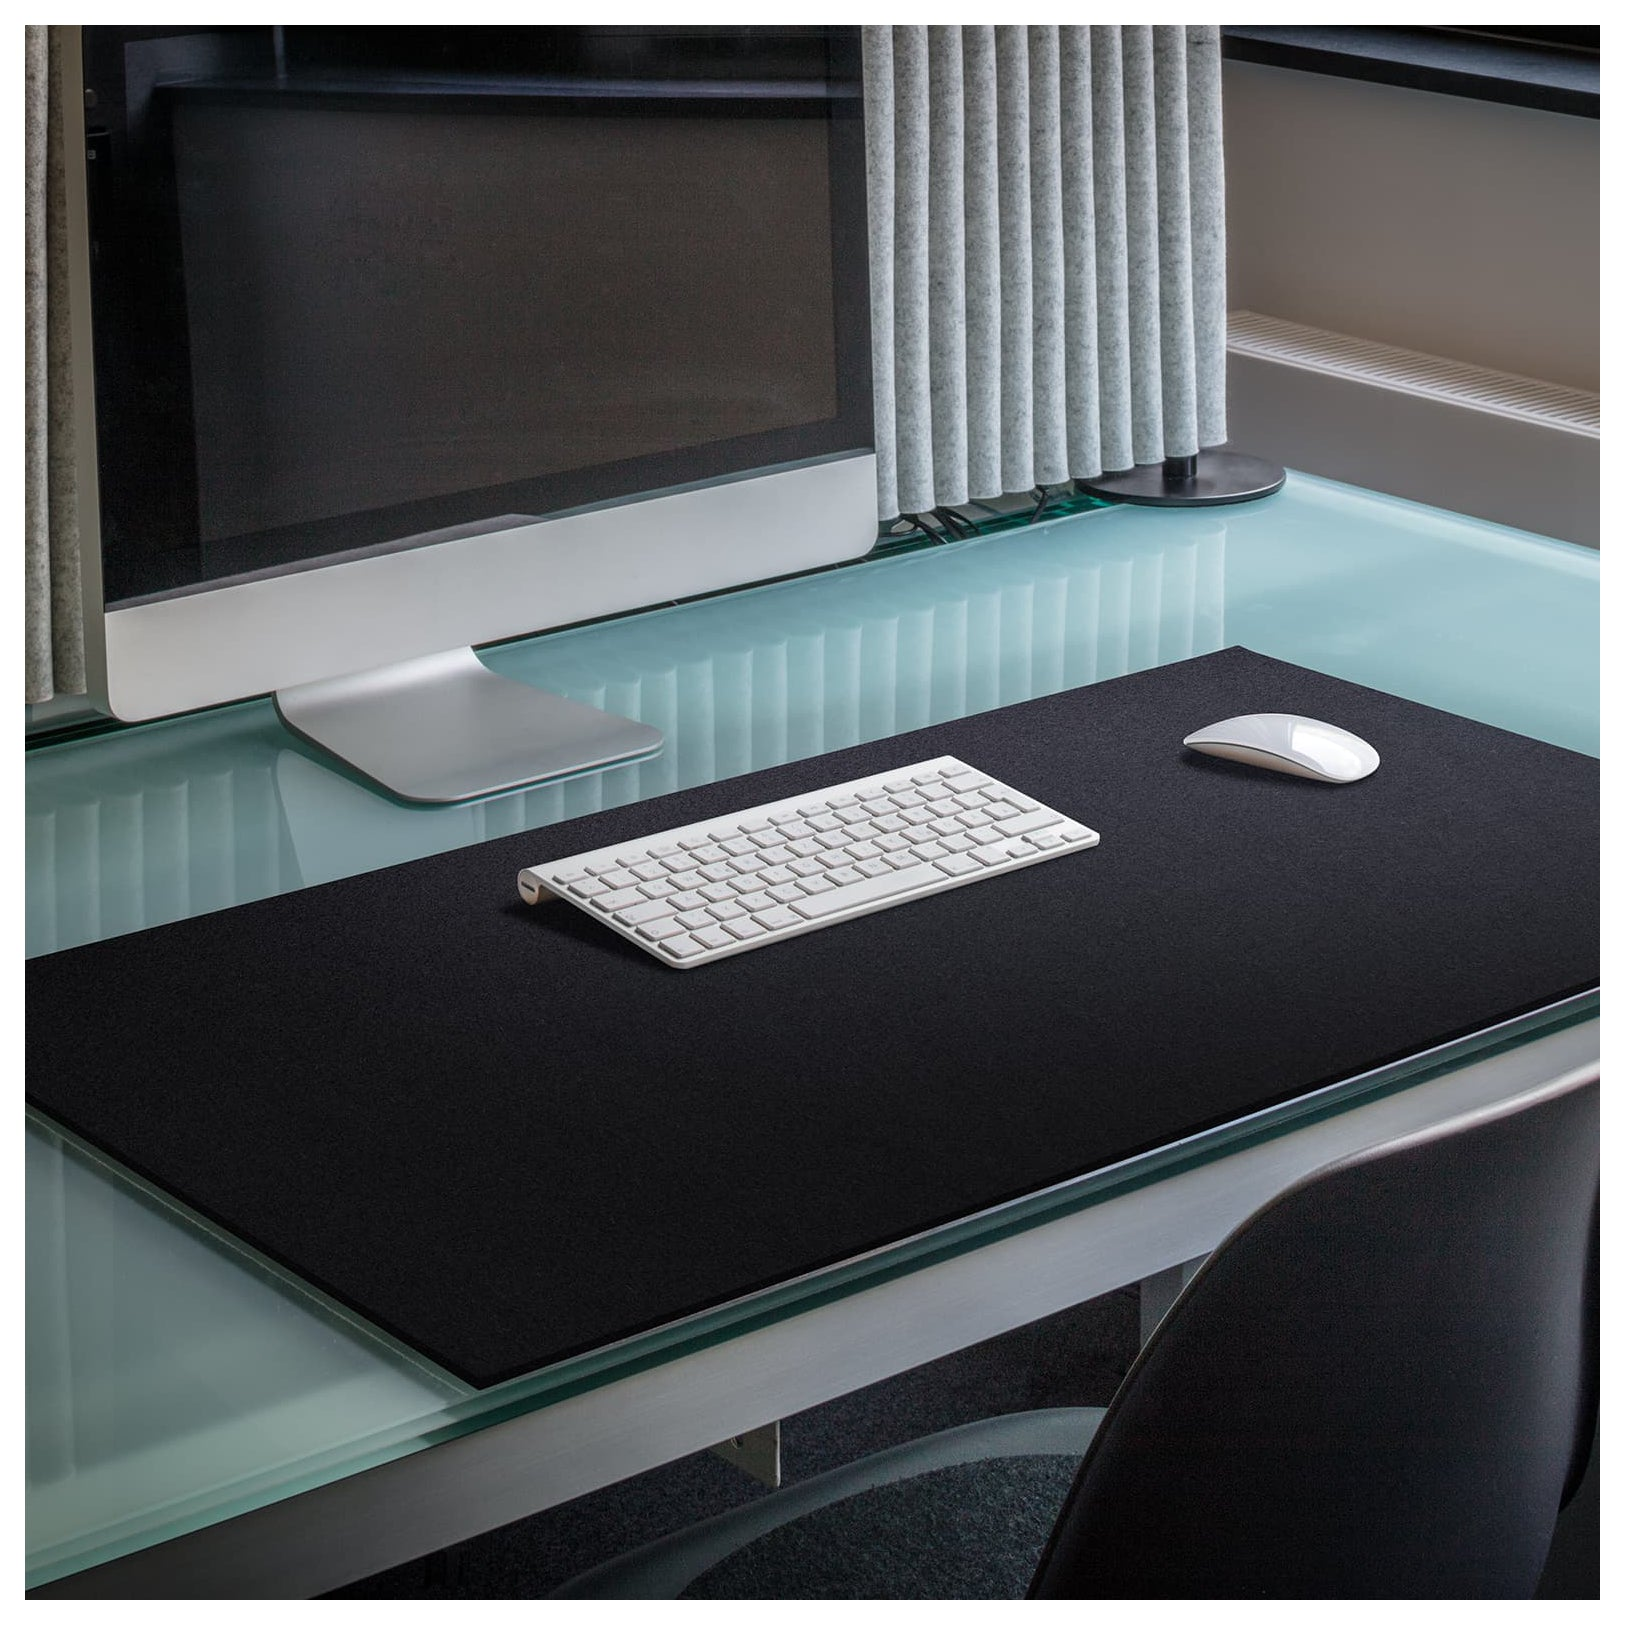 Rectangular Felt Desk Pad in Black by Hey-Sign 300109002 looking at Lifestyle Image